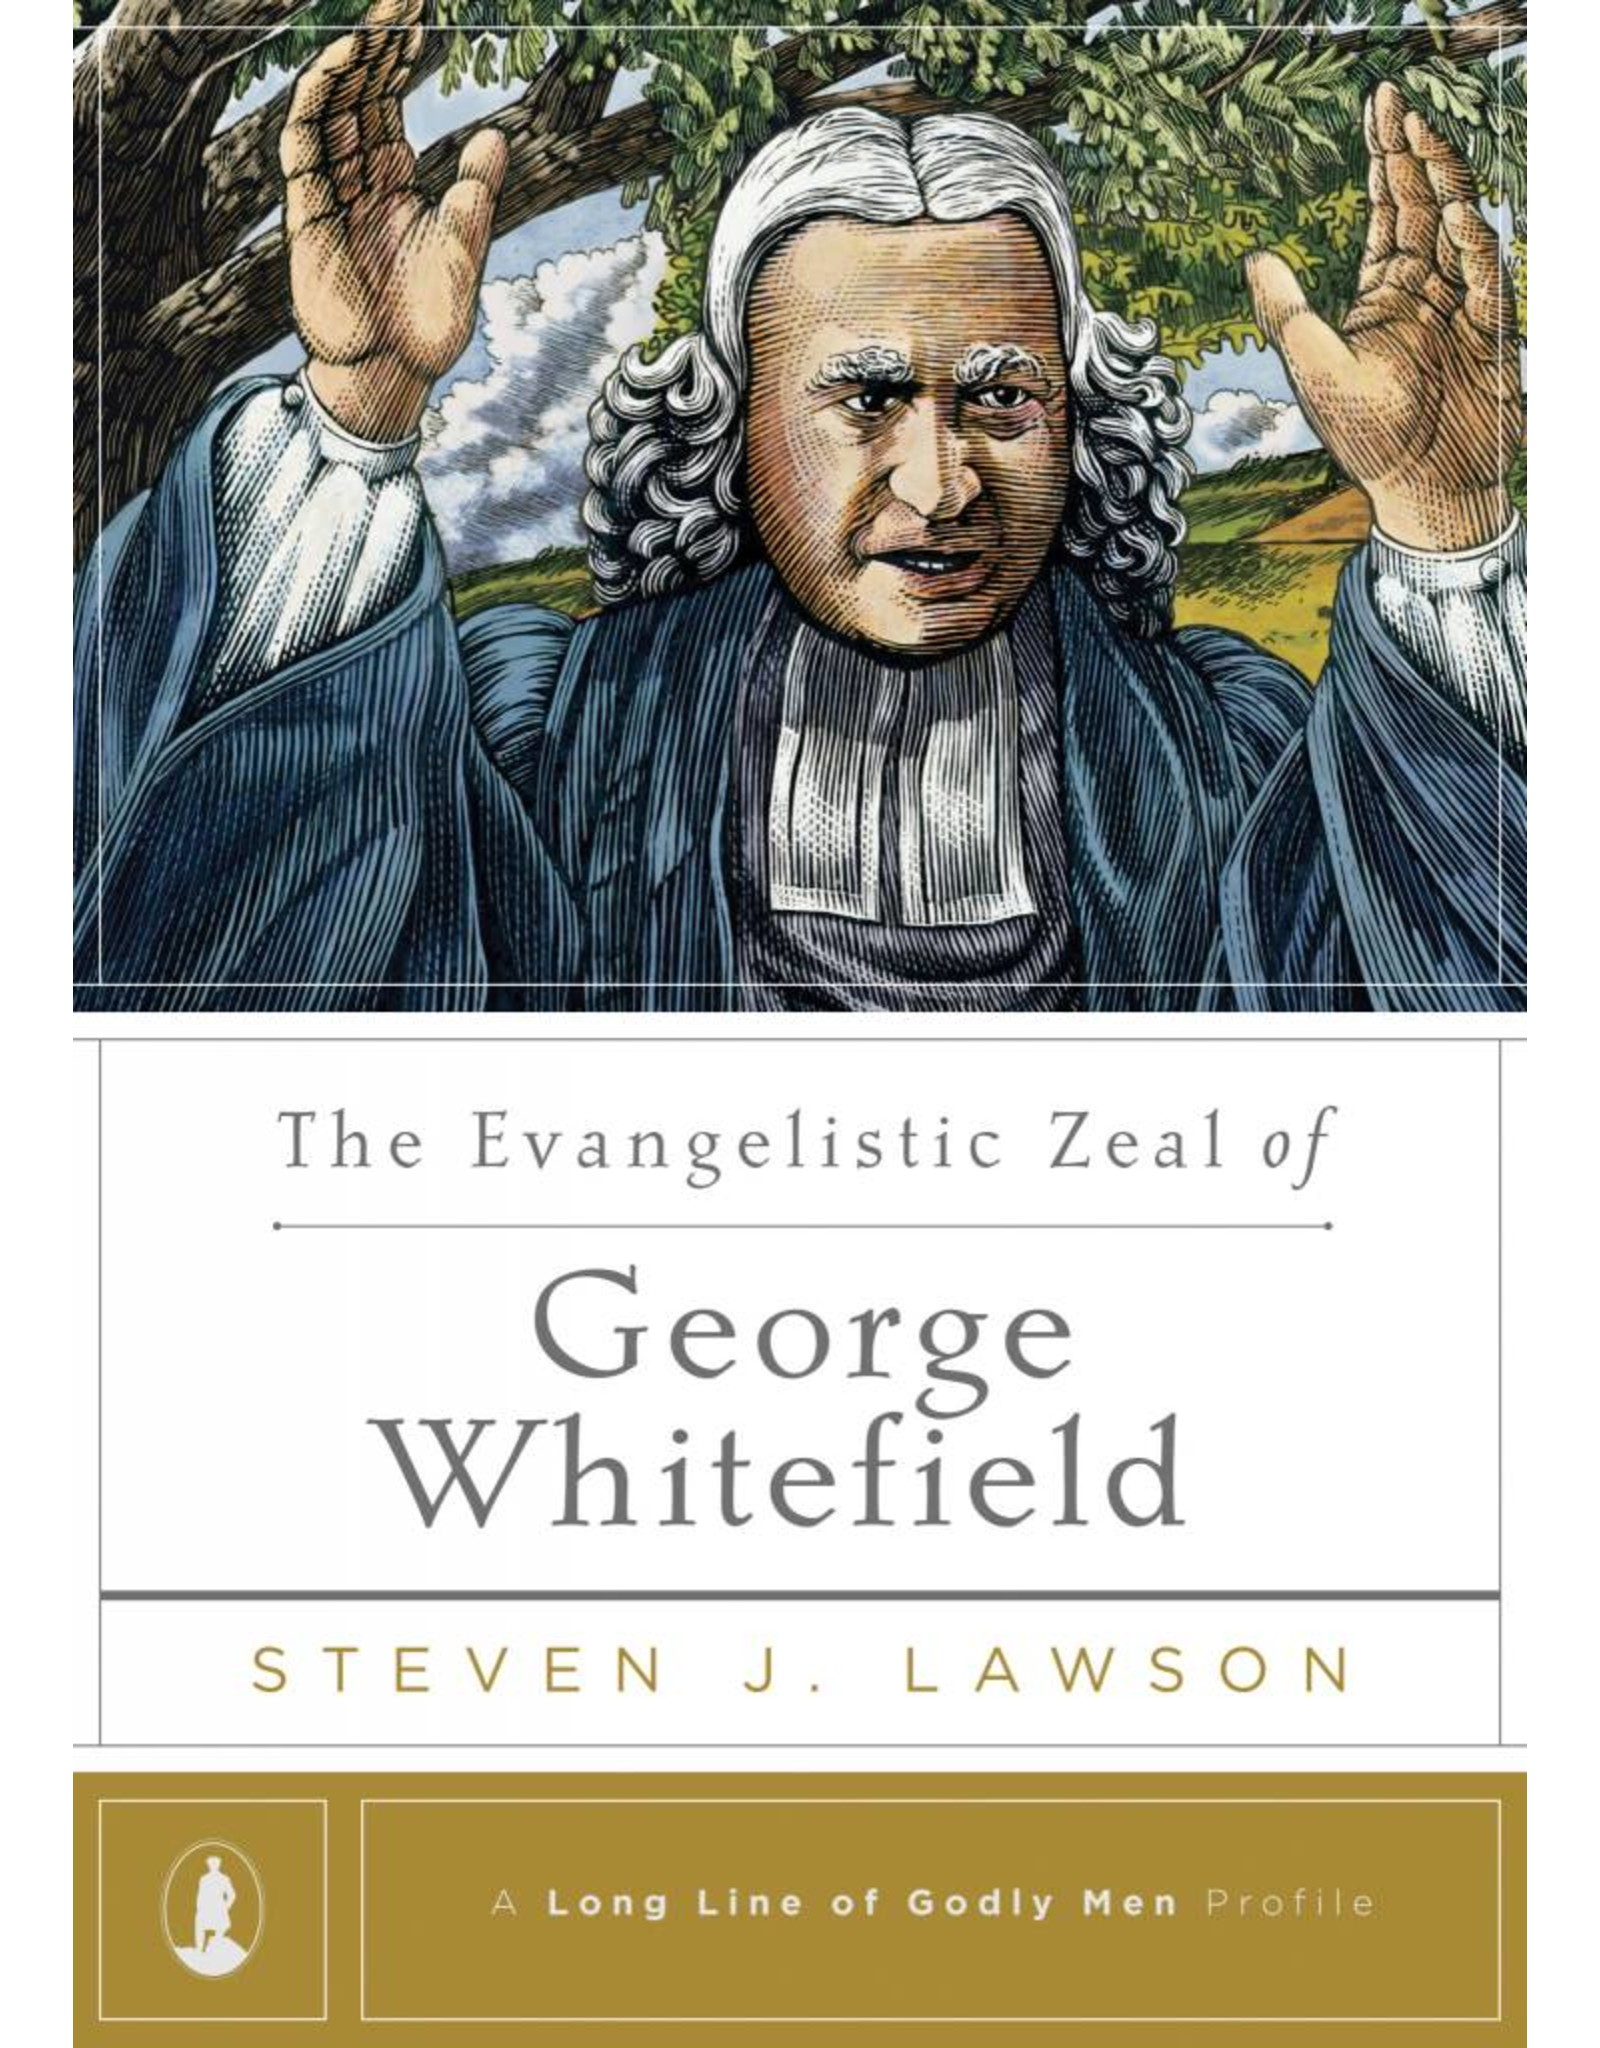 Ligonier / Reformation Trust The Evangelistic Zeal George Whitefield (A Long Line of Godly Men Series)